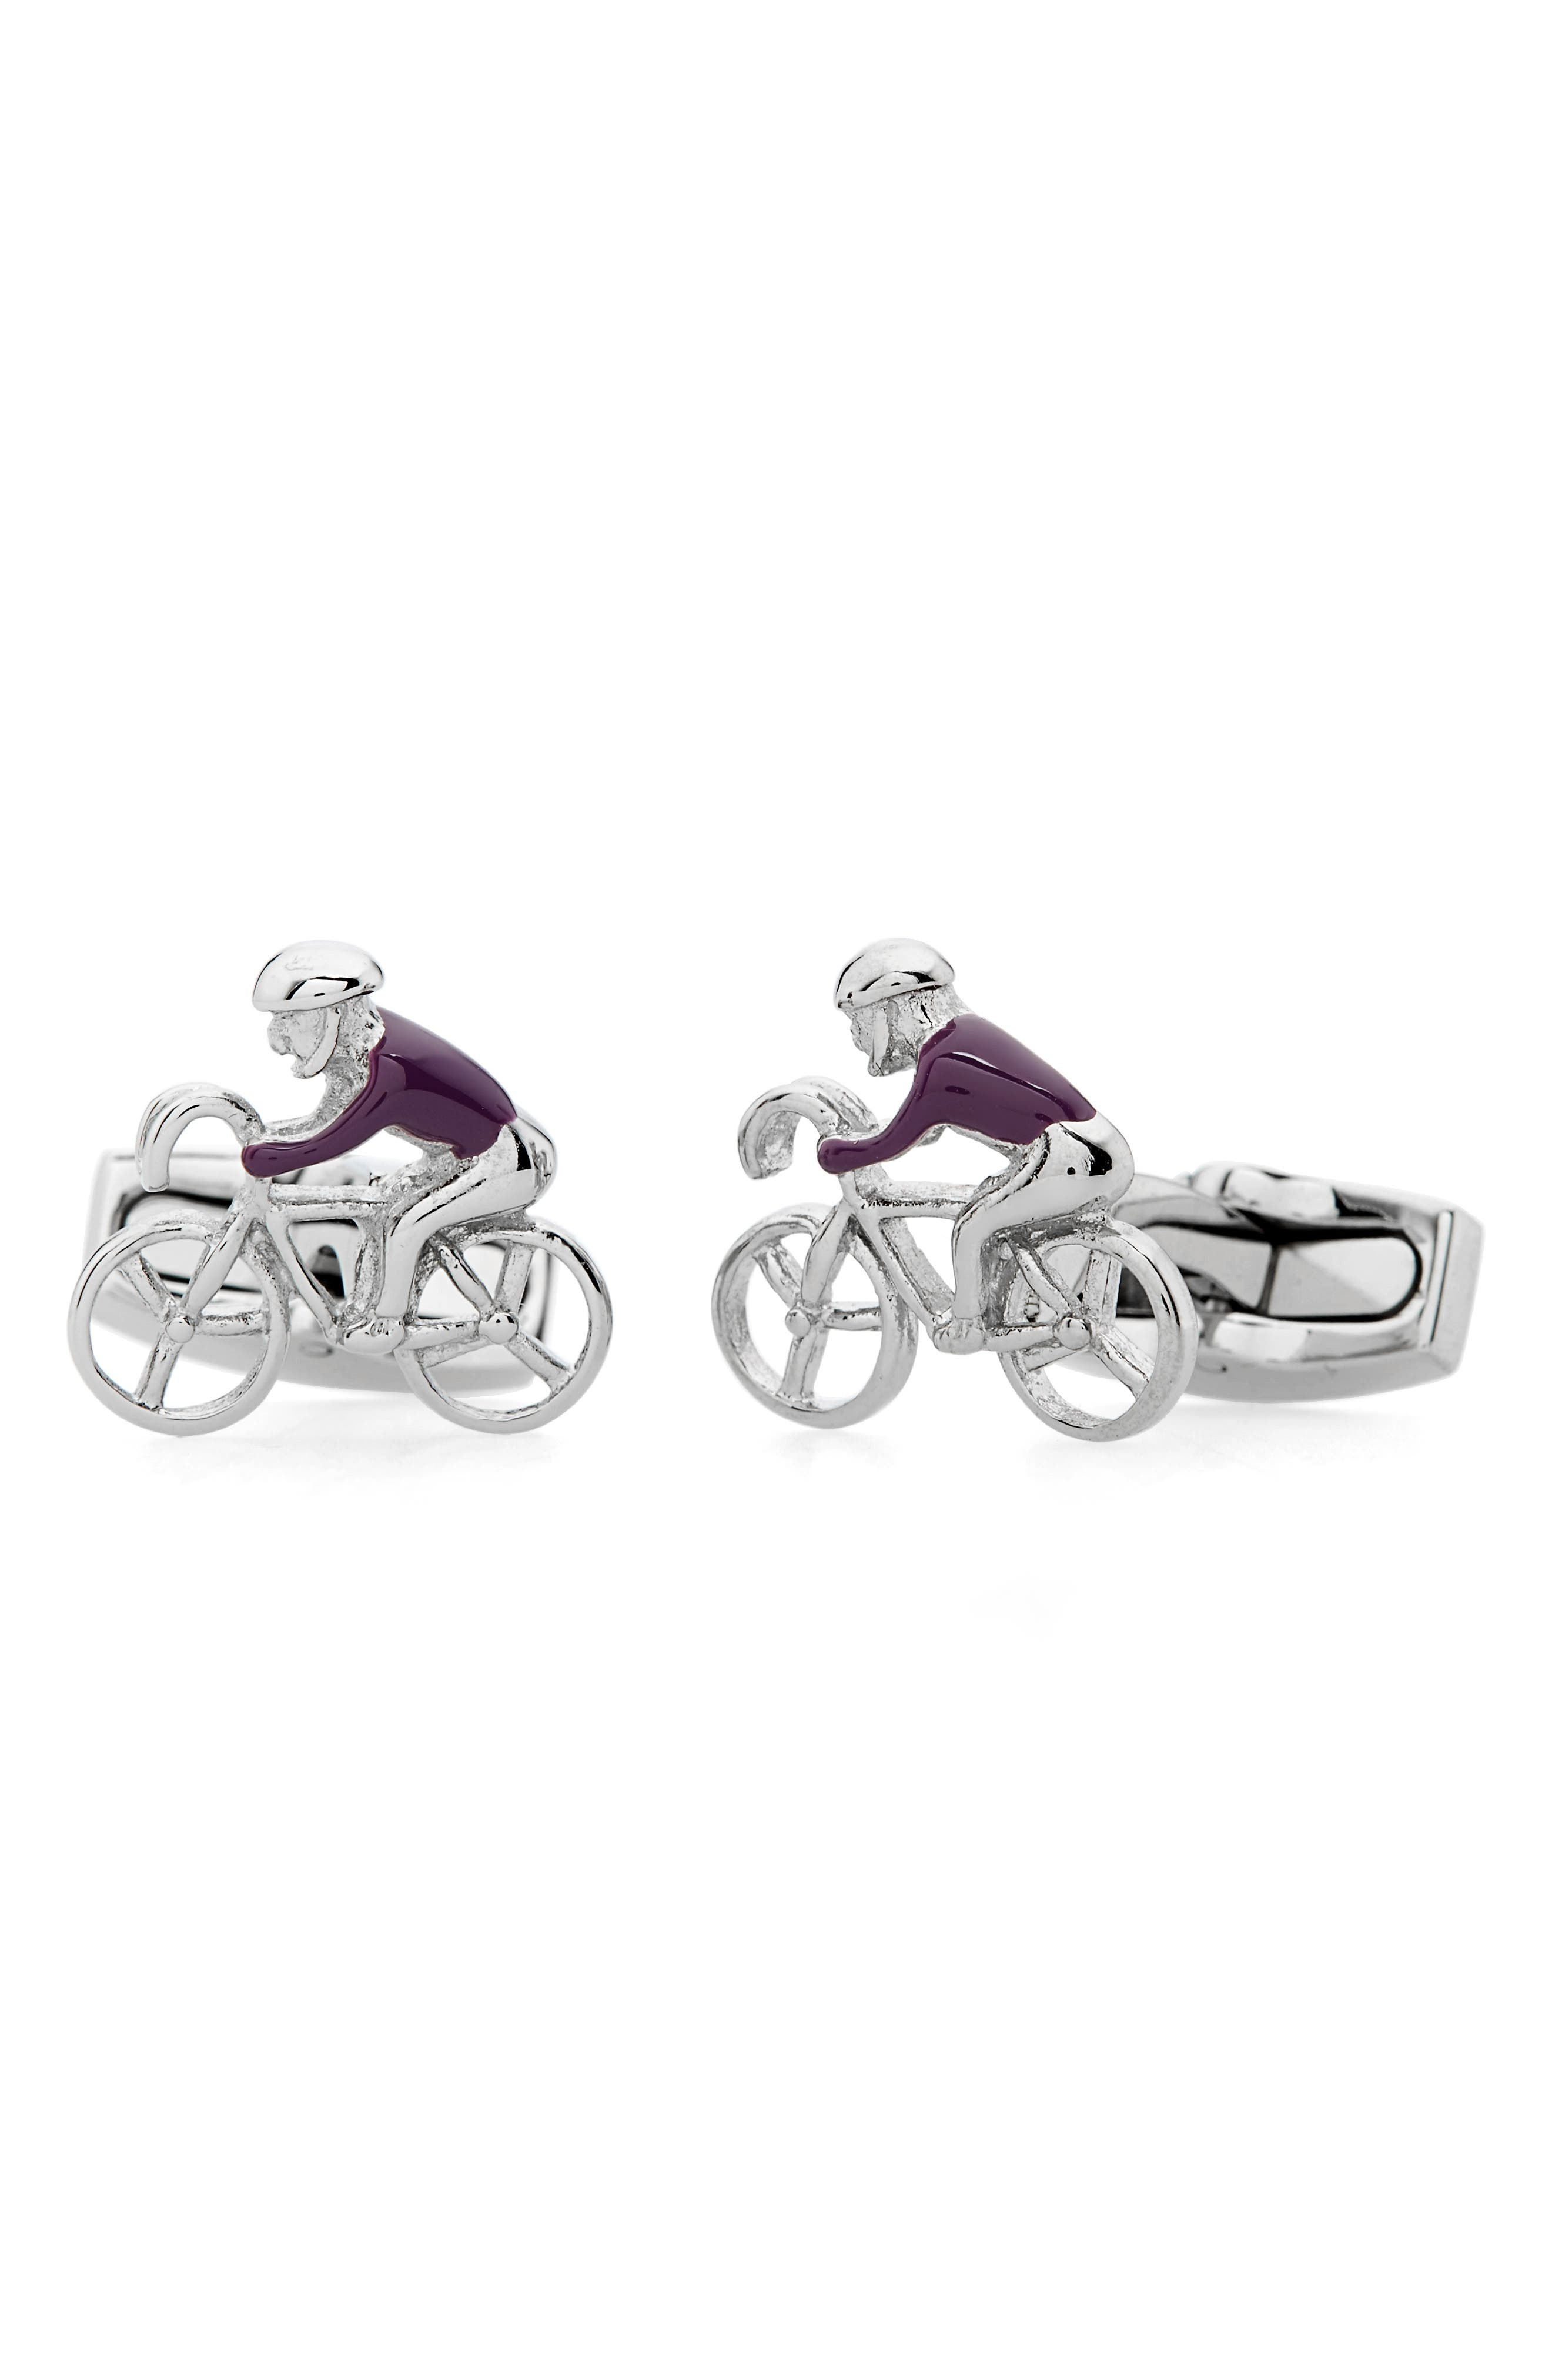 TED BAKER LONDON,                             Kahne Bike Cuff Links,                             Main thumbnail 1, color,                             510